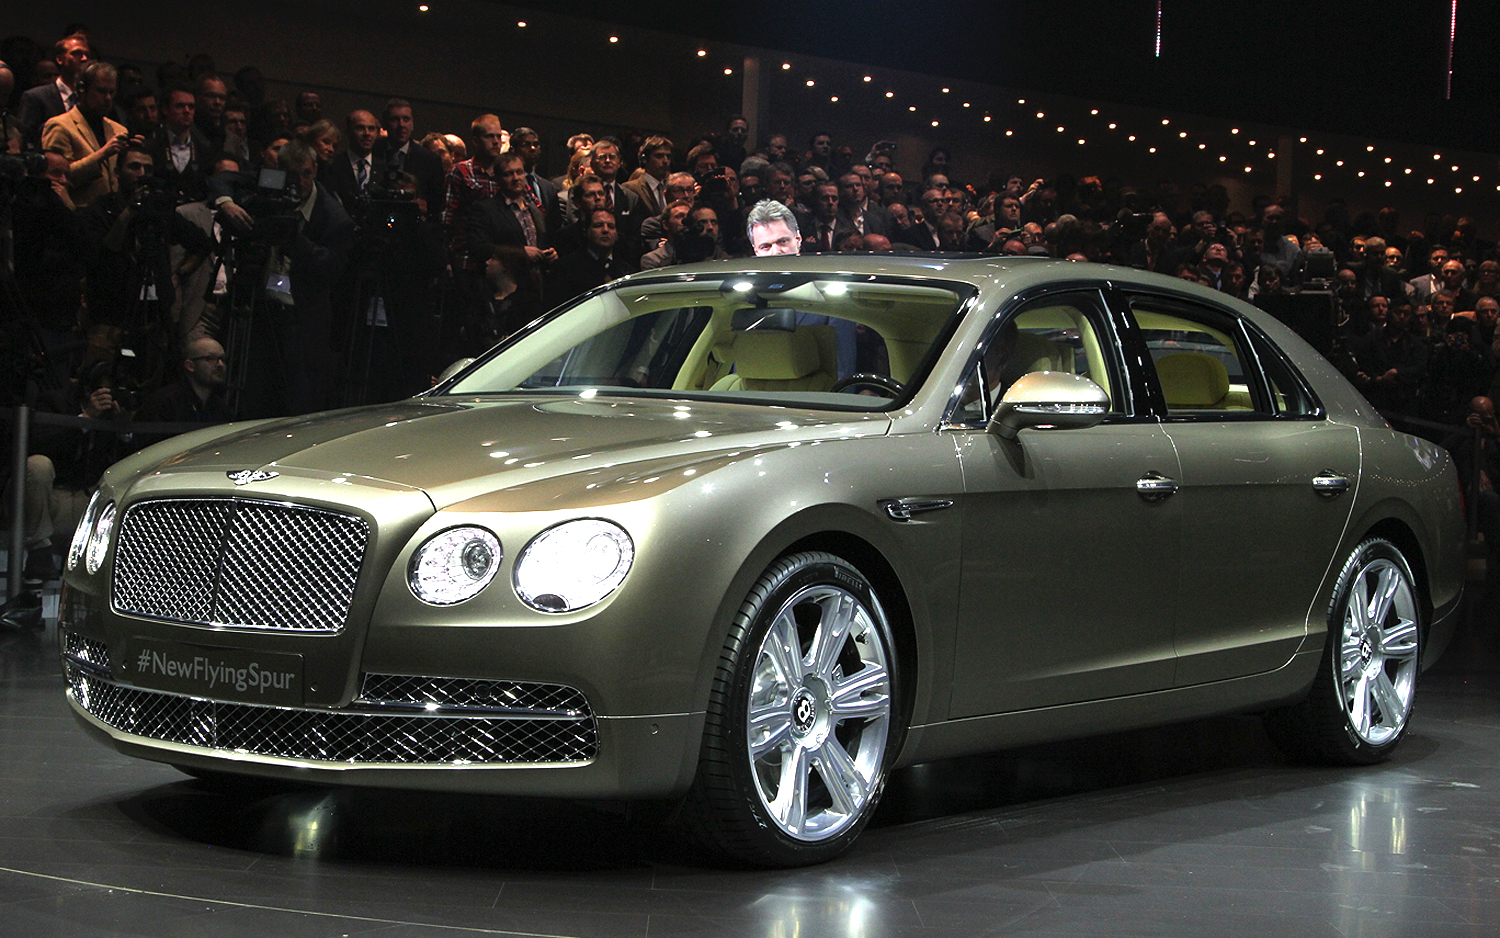 2014 Flying Spur #1